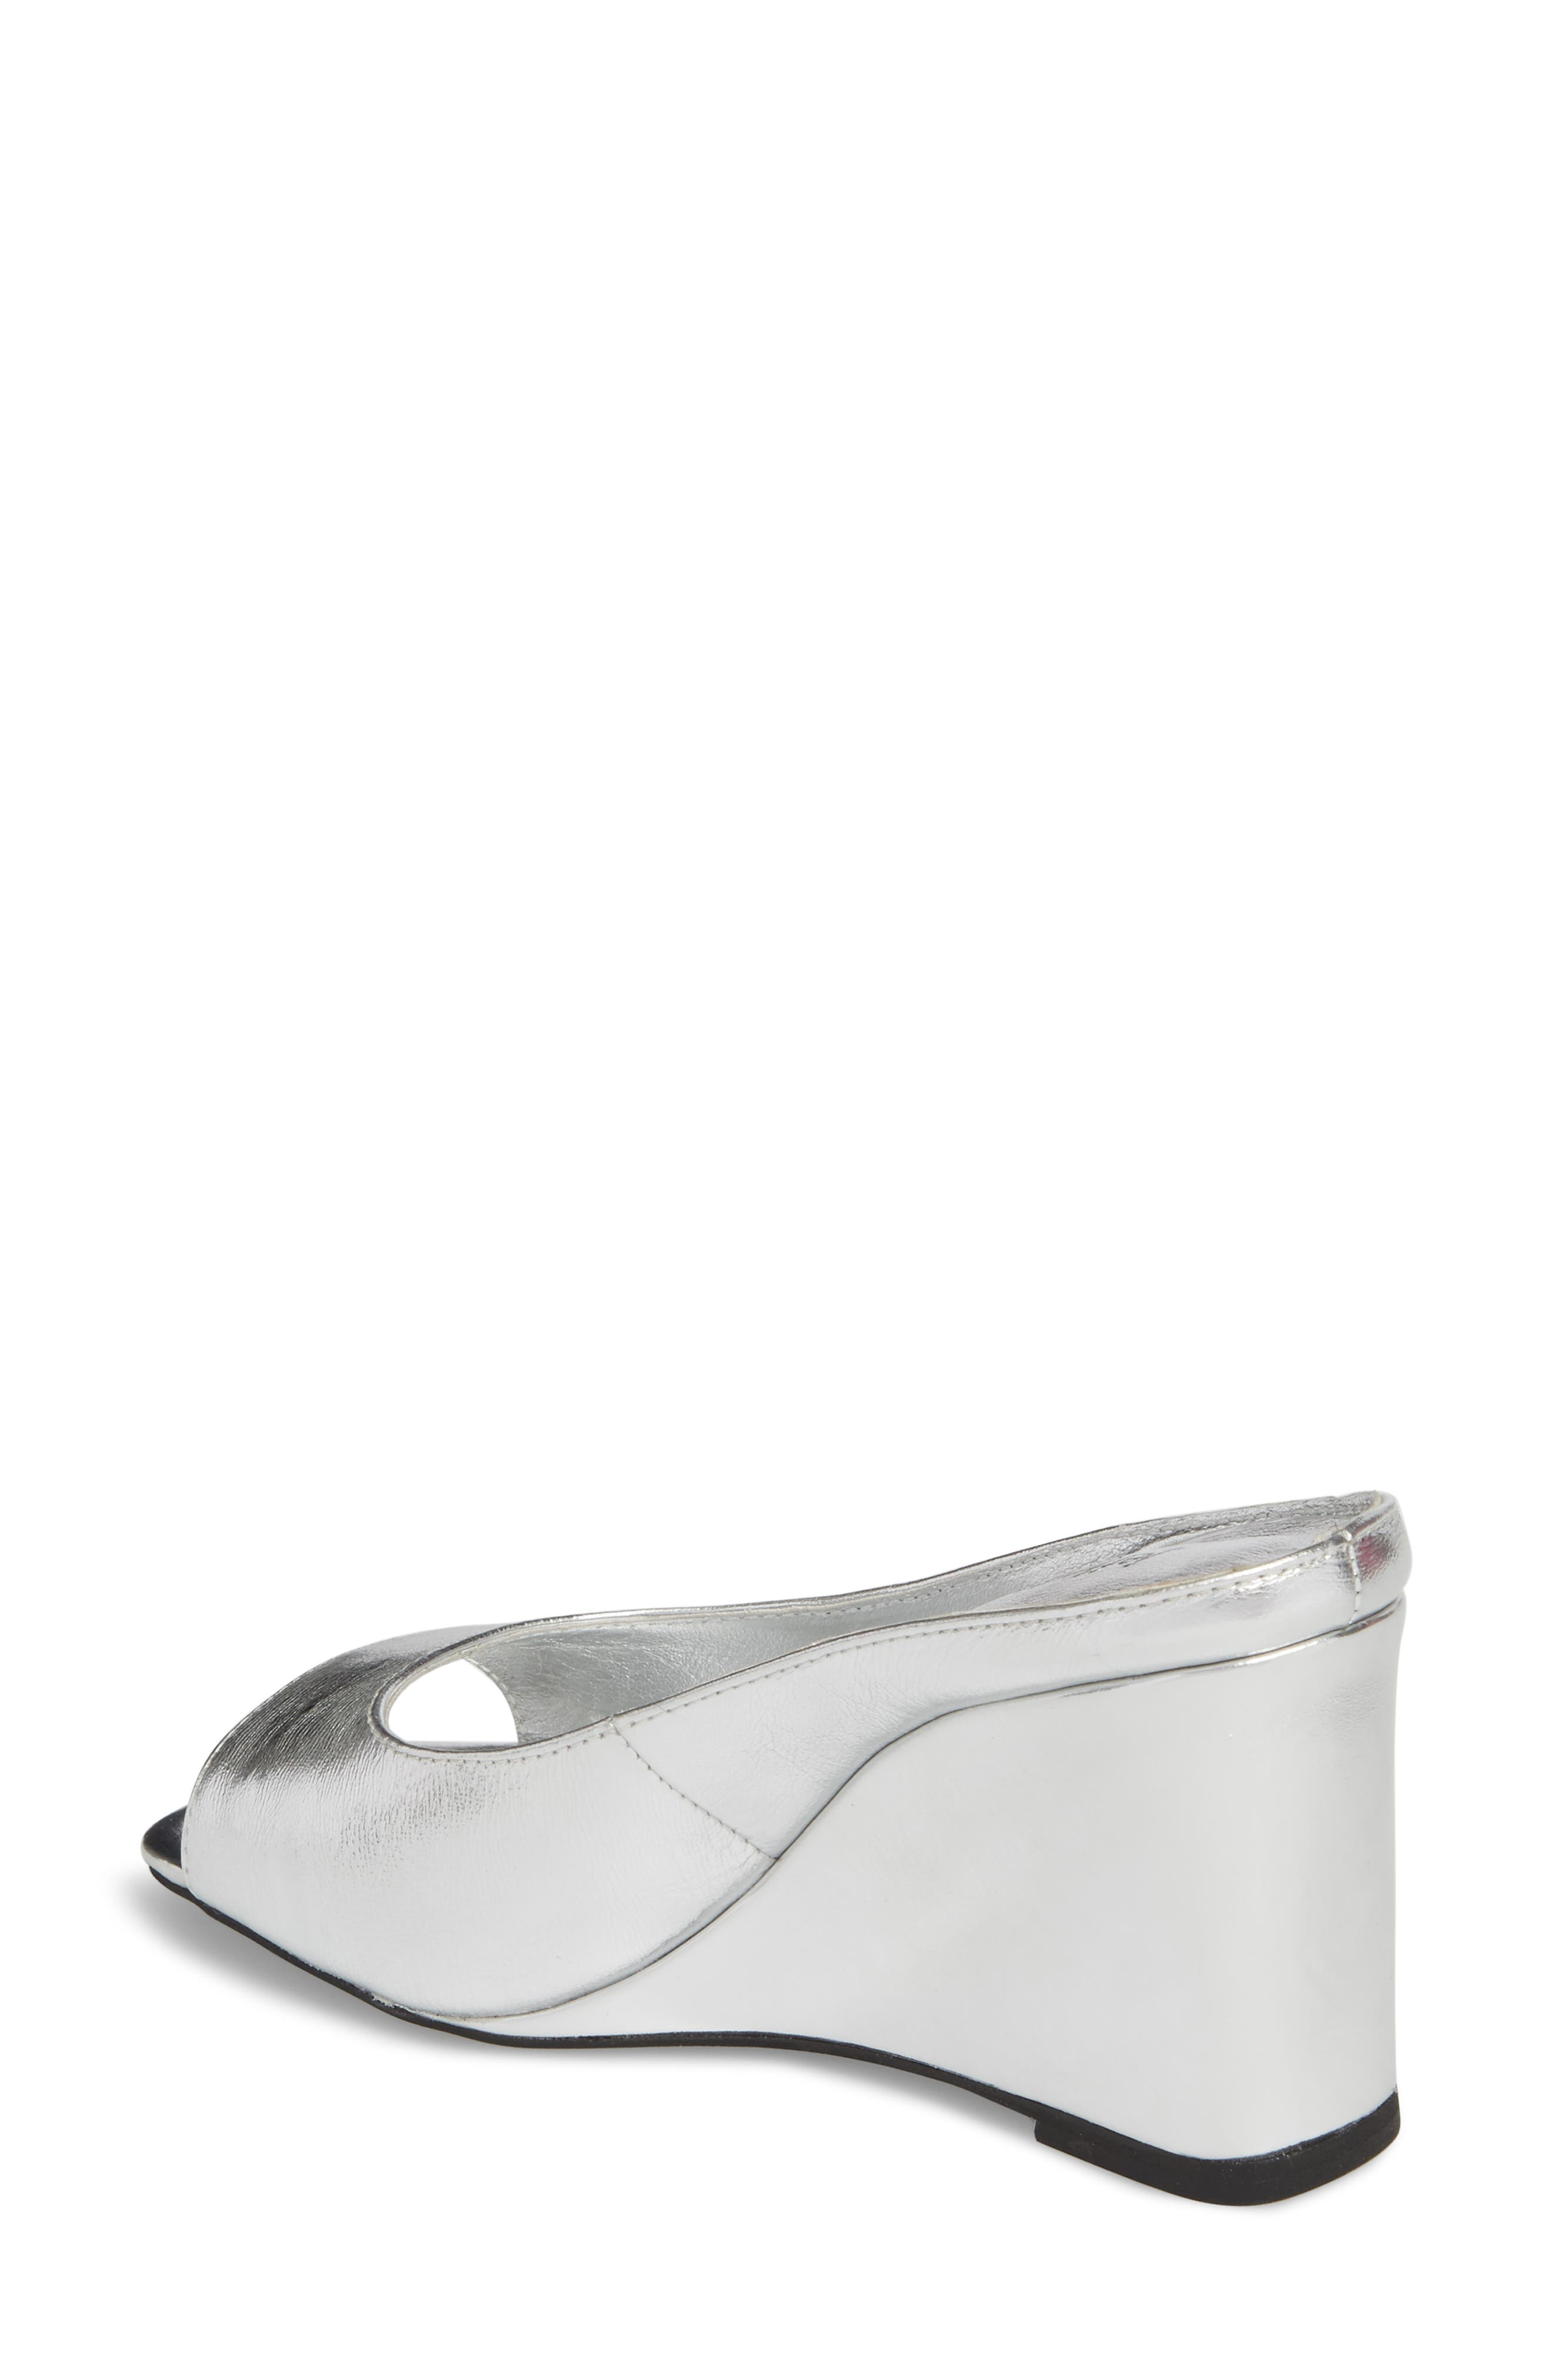 Generous Wedge Sandal,                             Alternate thumbnail 2, color,                             Silver Leather